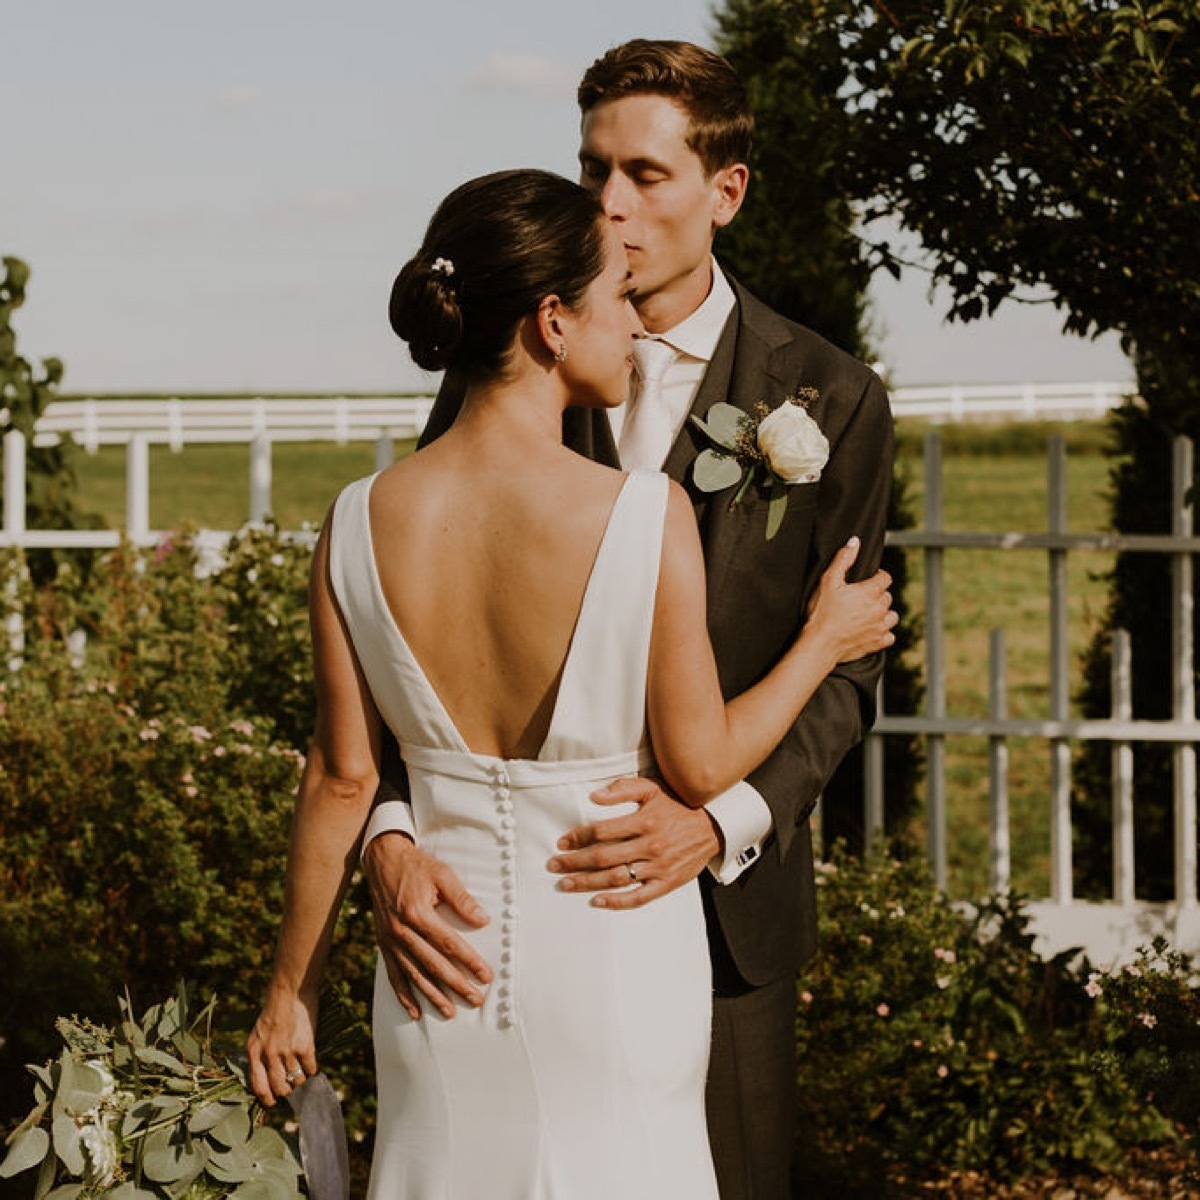 Anomalie online wedding dress crepe fit and flare gown Madison Wisconsin wedding